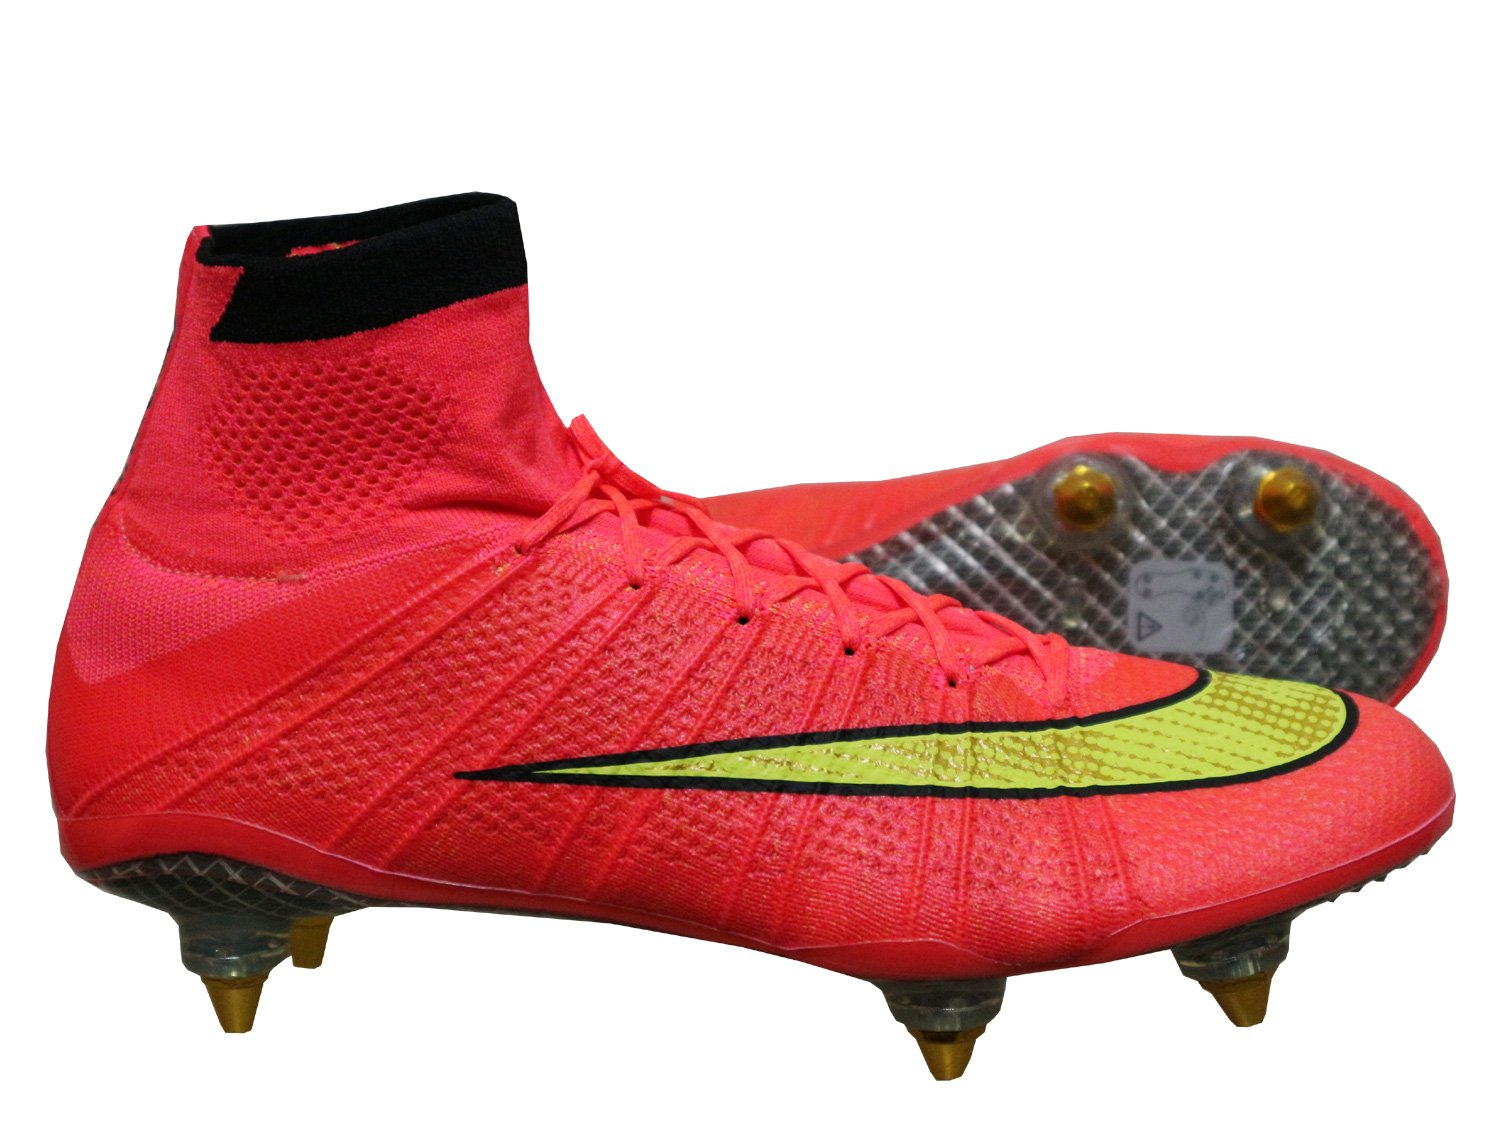 the latest fa19e 38116 ... ireland nike mercurial superfly sg crampons de football chaussures avec  chaussette de compression rouge amazon.